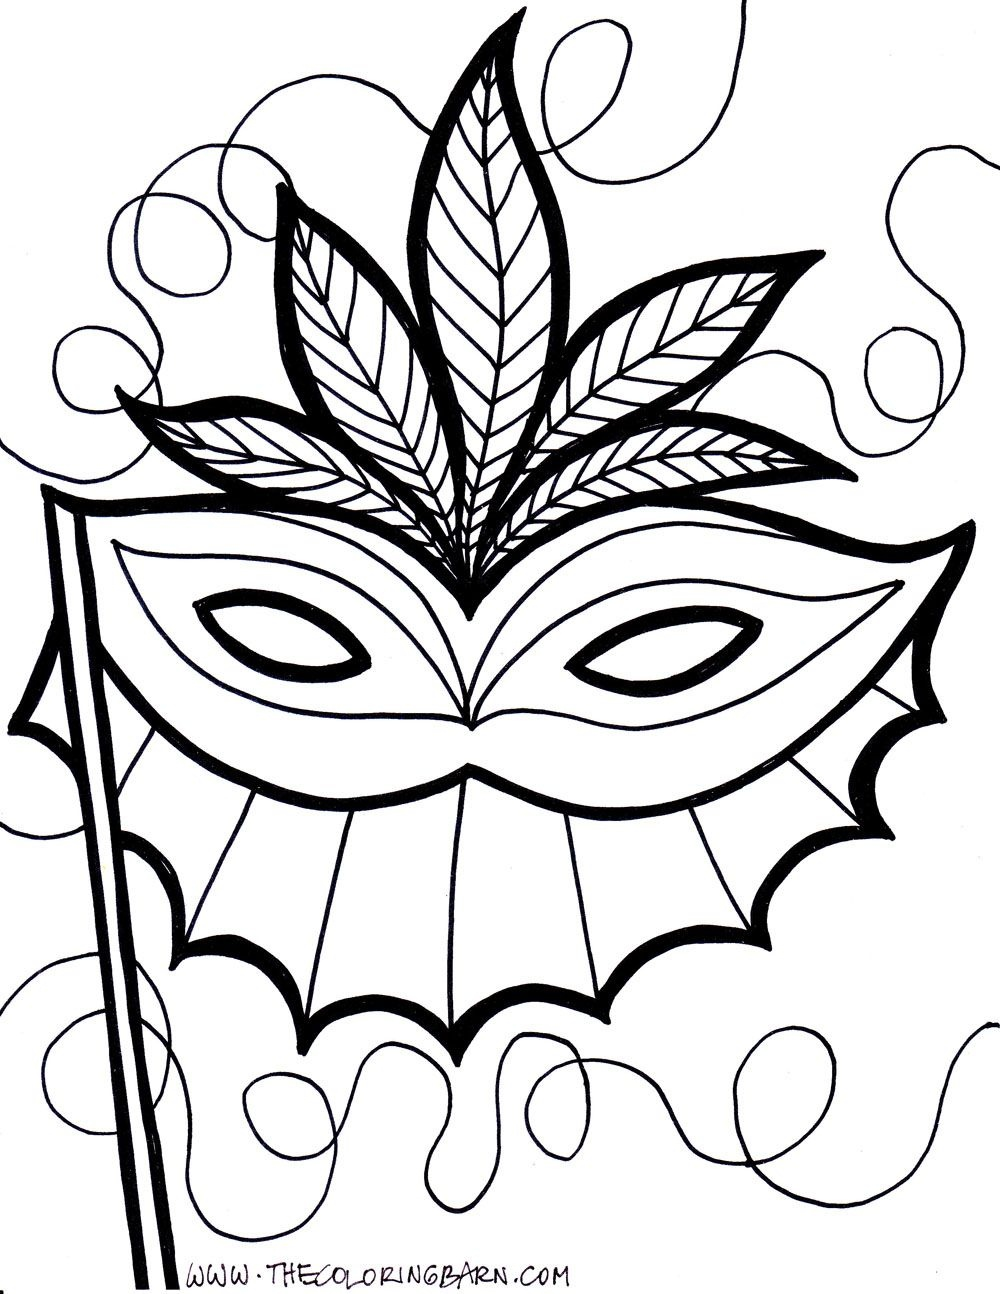 Pinelyssanda Desertsong On Embroidery Inspiration | Mardi Gras - Free Printable Mardi Gras Masks